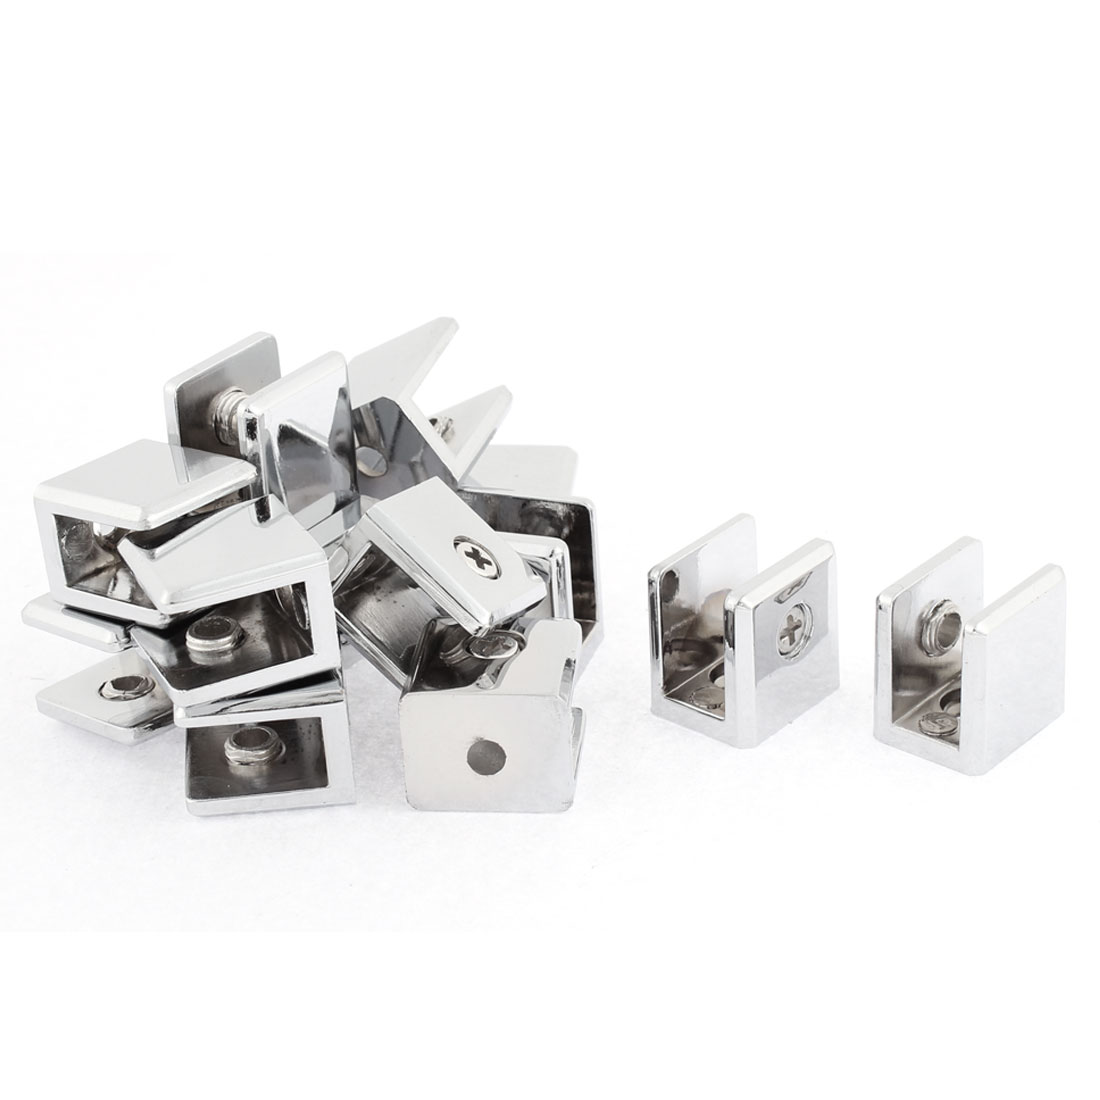 10mm Thickness Glass Shelf Bracket Support Clip Clamp Silver Tone 16pcs